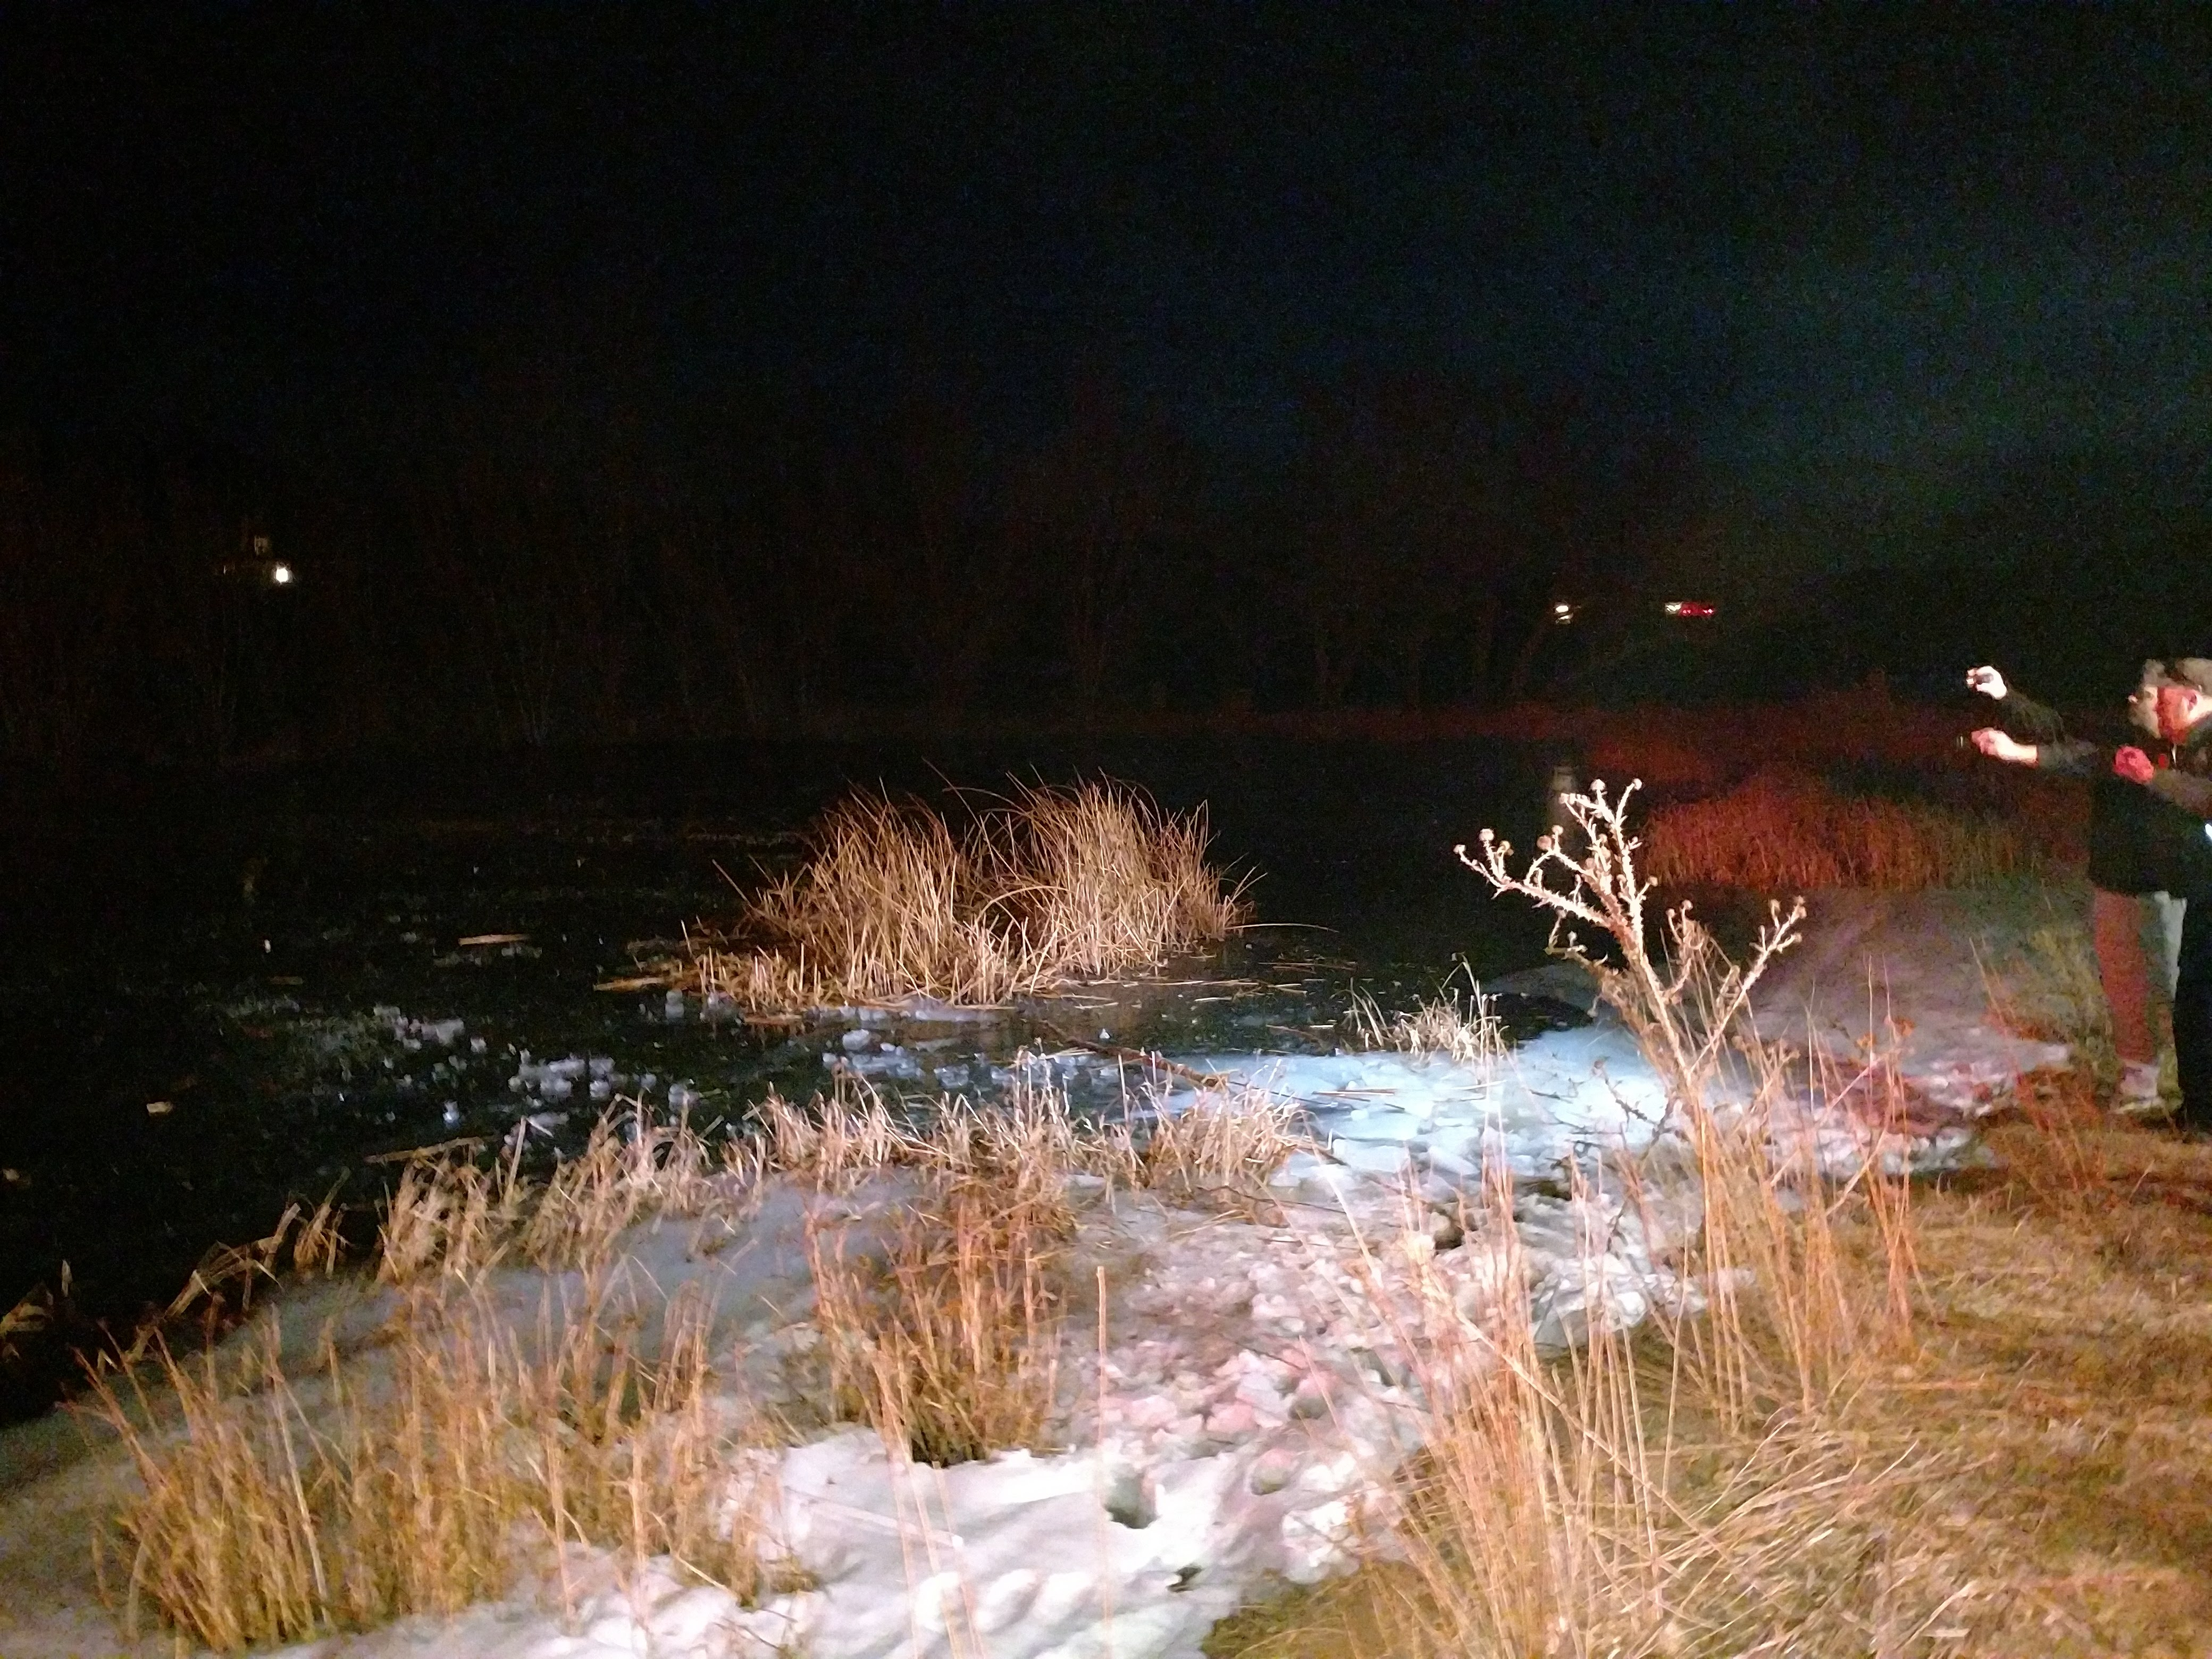 Boy saved from a frozen pond by hero sergeant. (Photo: KUTV)<p></p>